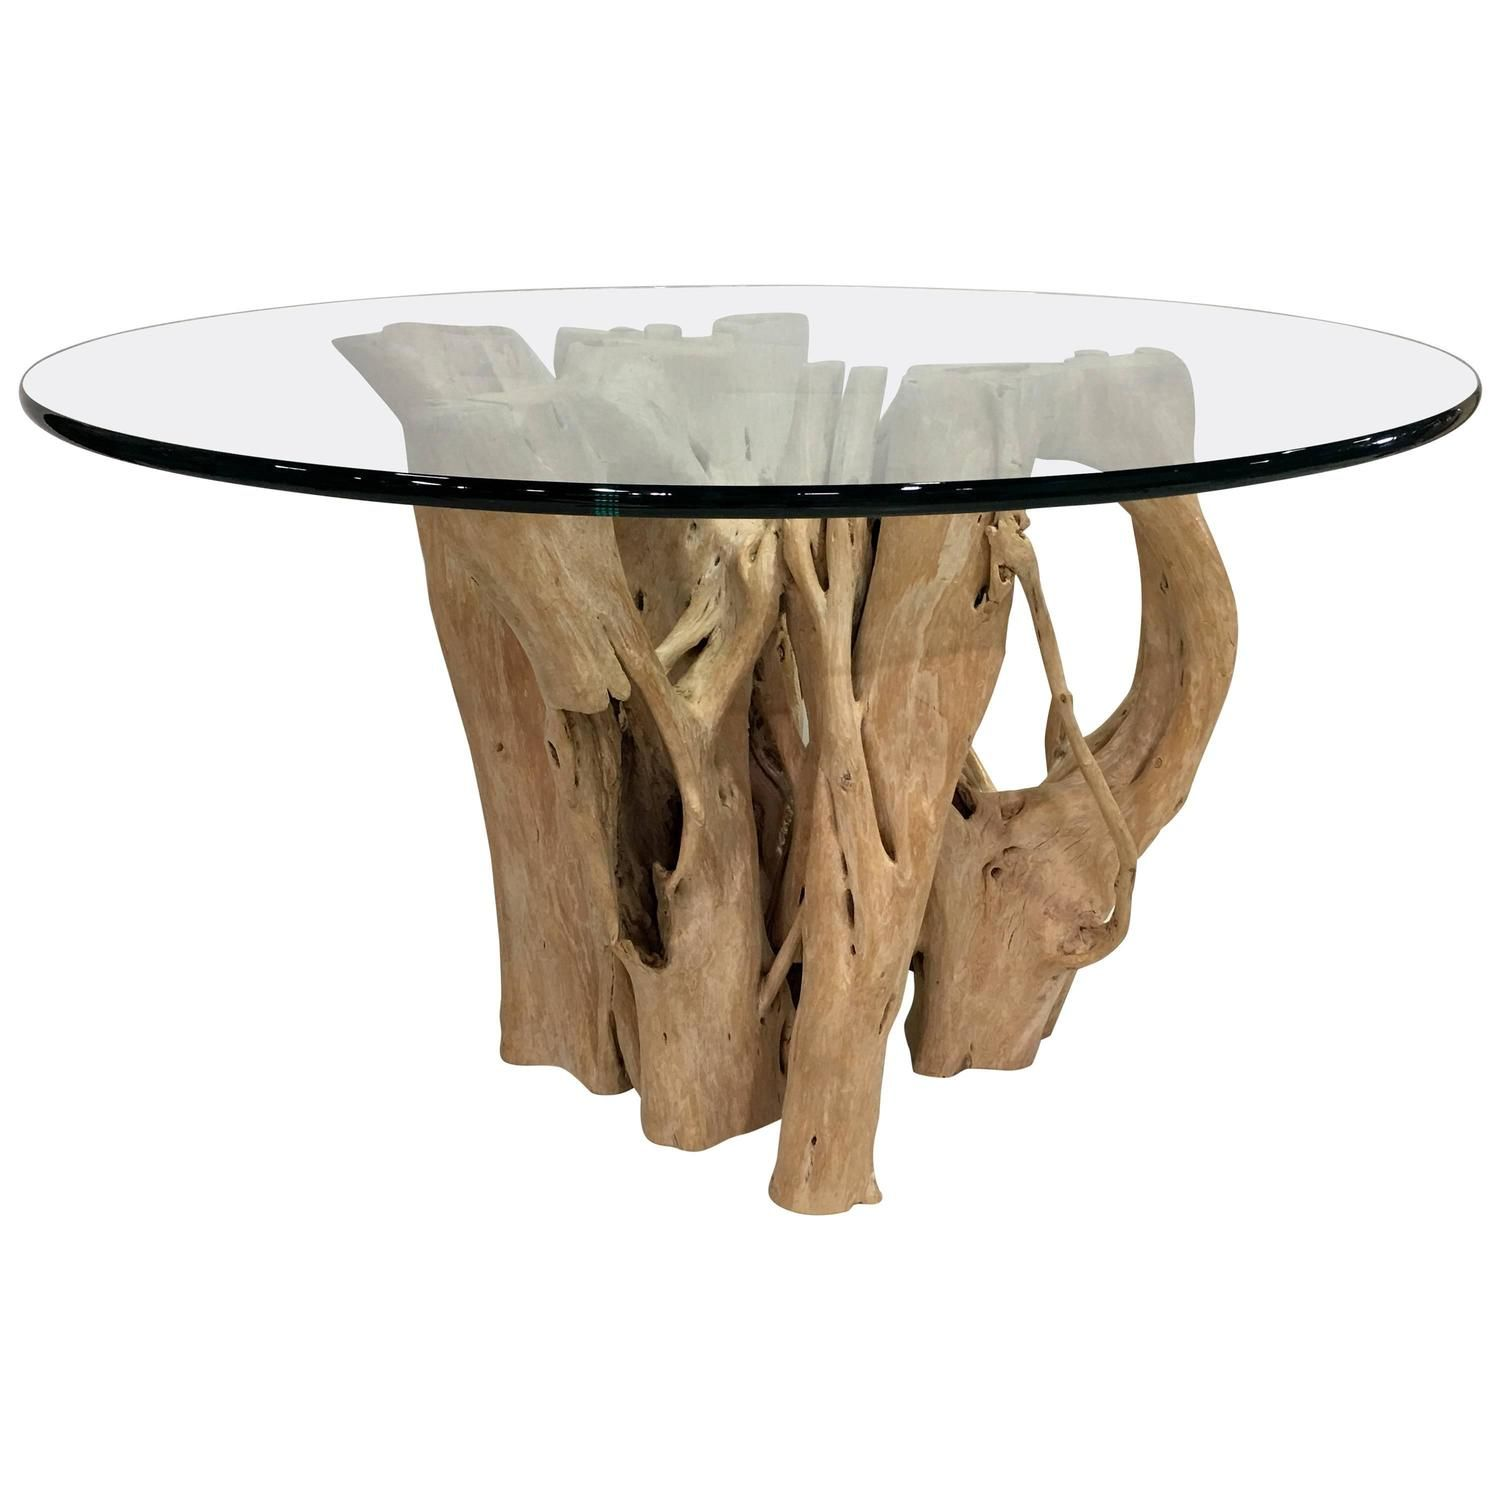 Cypress Tree Trunk Dining Table By Michael Taylor Dining Table